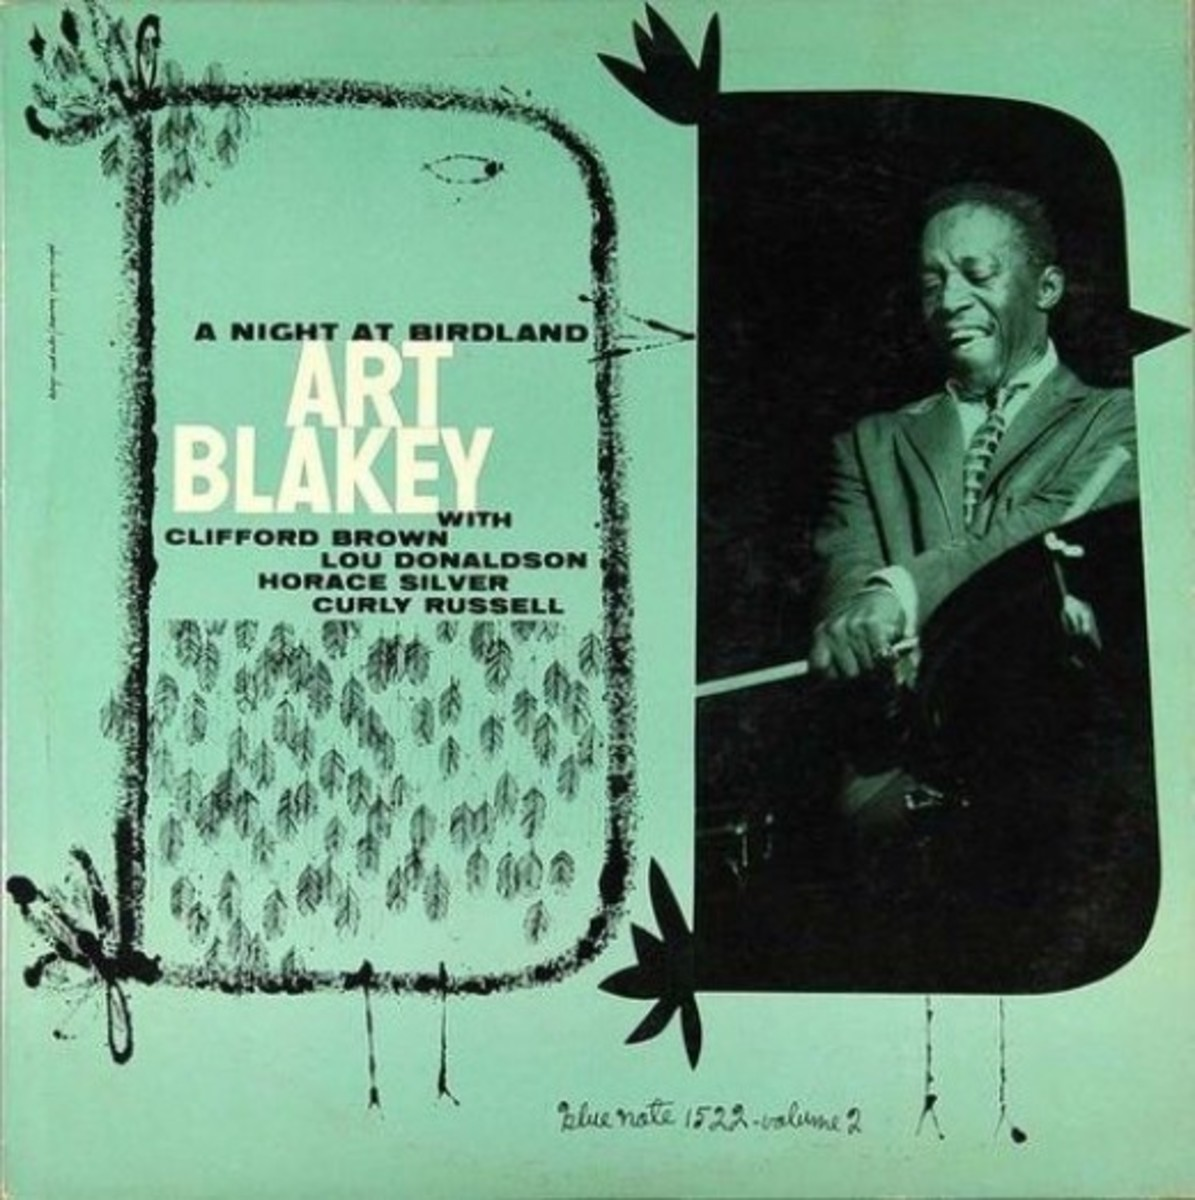 "Art Blakey Quintet ""A Night At Birdland vol. 2"" Blue Note Records BLP 1521 12"" LP Vinyl Record (1954) Album Cover Design by Reid Miles Photo by Francis Wolff"